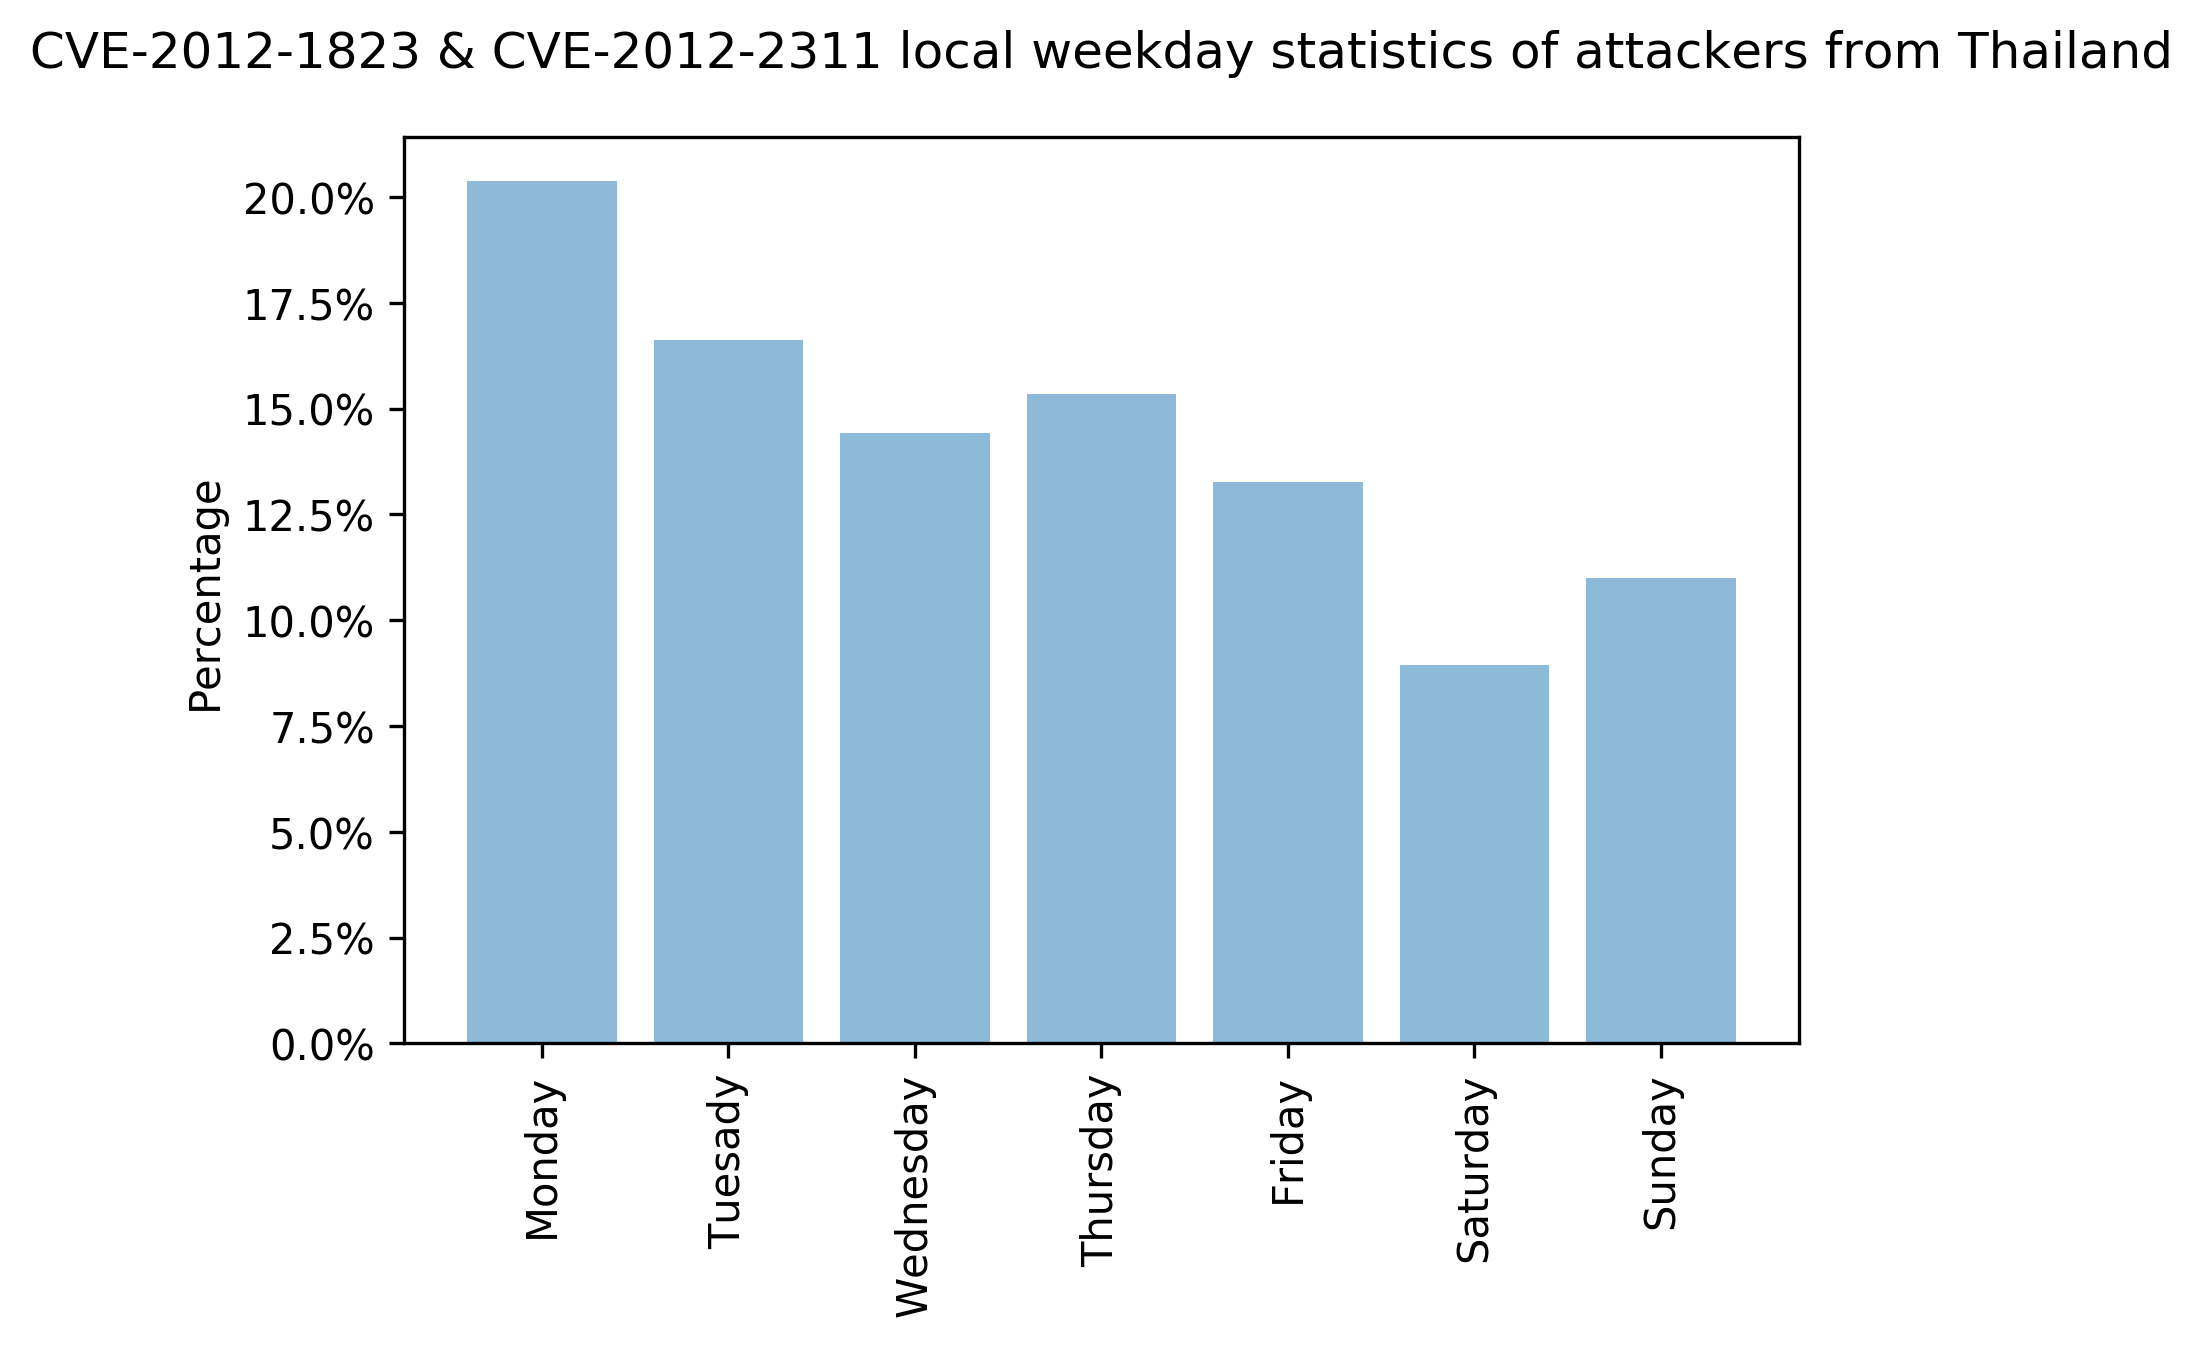 CVE-2012-1823 & CVE-2012-2311 local weekday statistics of attackers from Thailand. The X-axis represents days of the week and the Y-axis represents the percentages of attacks observed on those days.